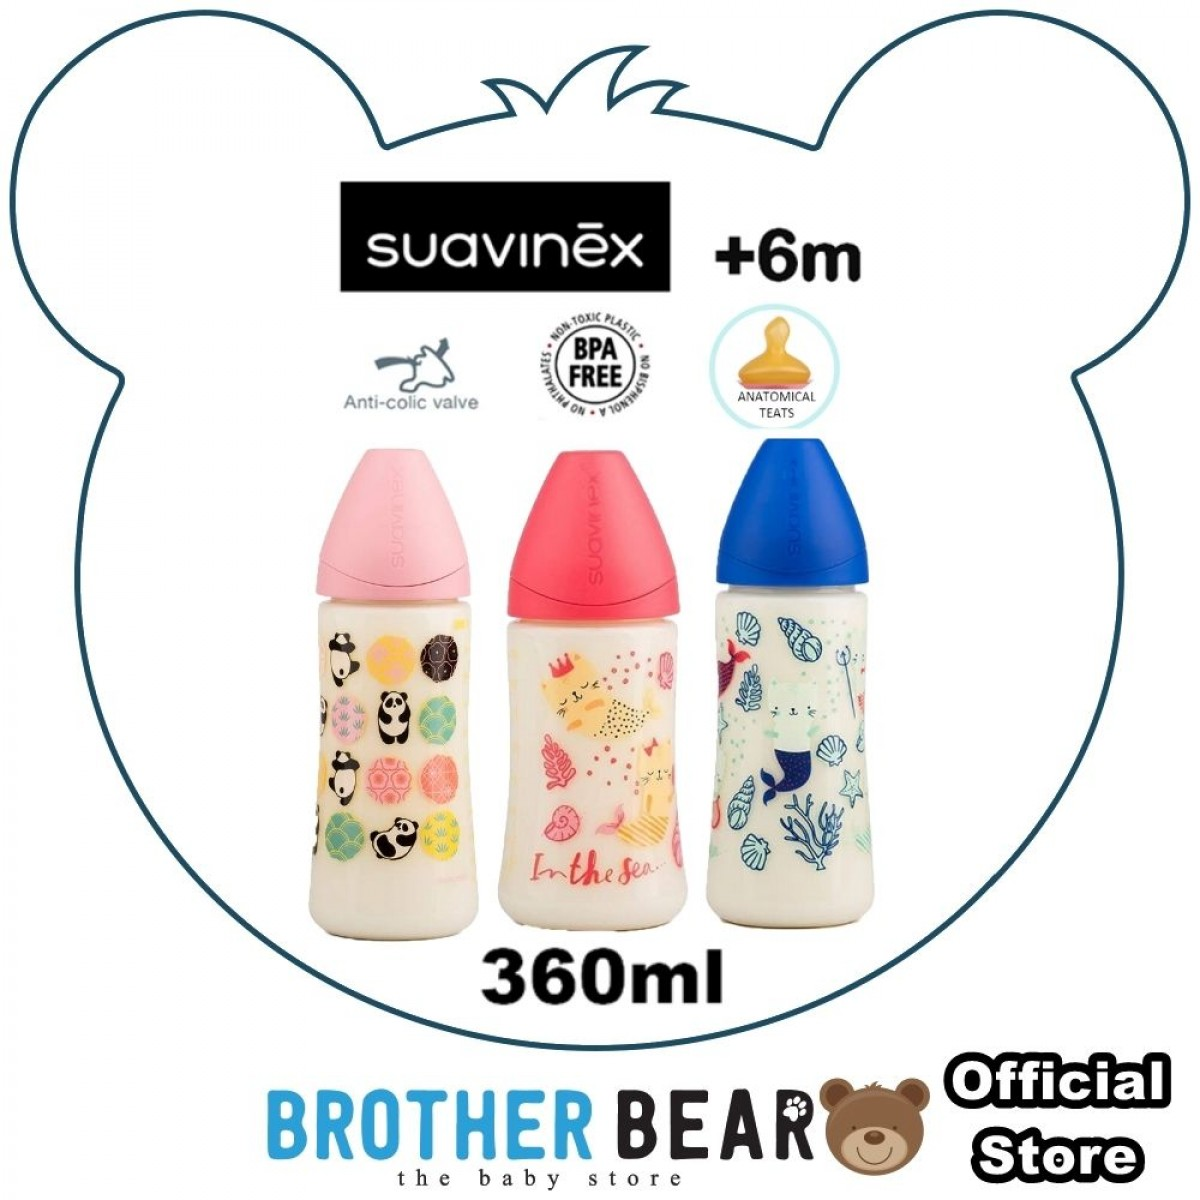 Suavinex Feeding Bottle +6M Medium Flow with Anatomical Teat 360ml